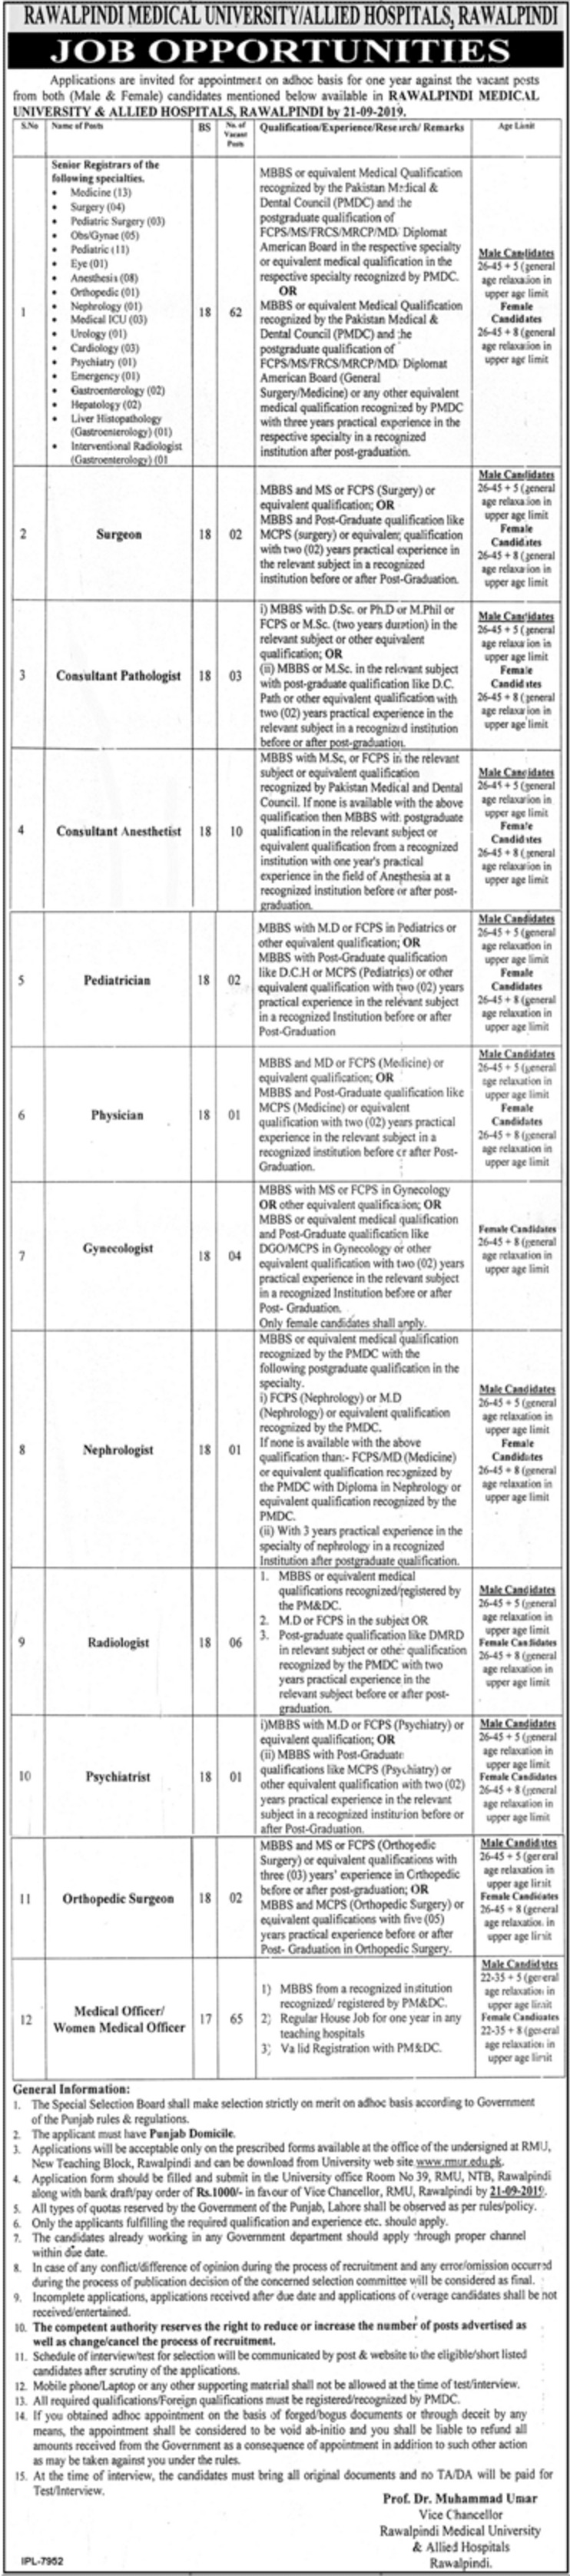 Rawalpindi Medical University RMU Jobs 2019 Application Form